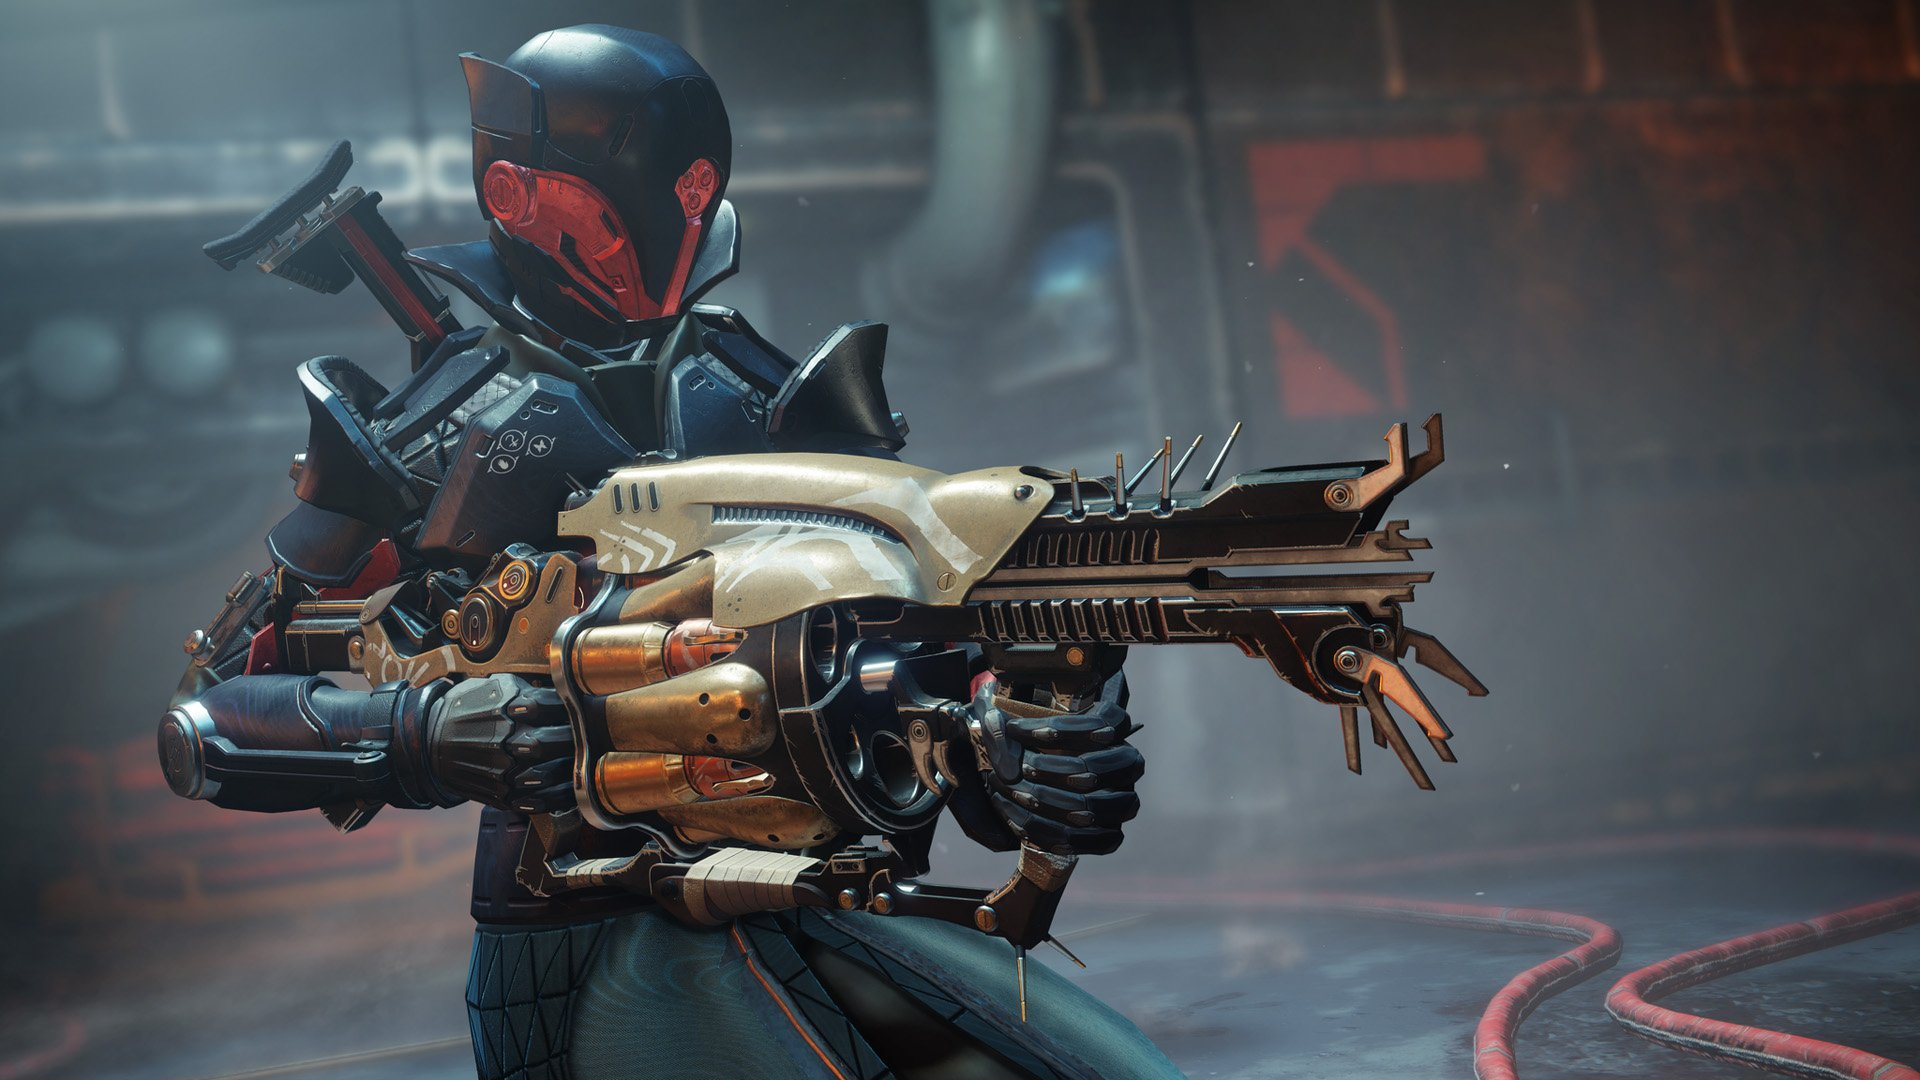 Destiny 2 kicked it up a notch with the Forsaken expansion this year.